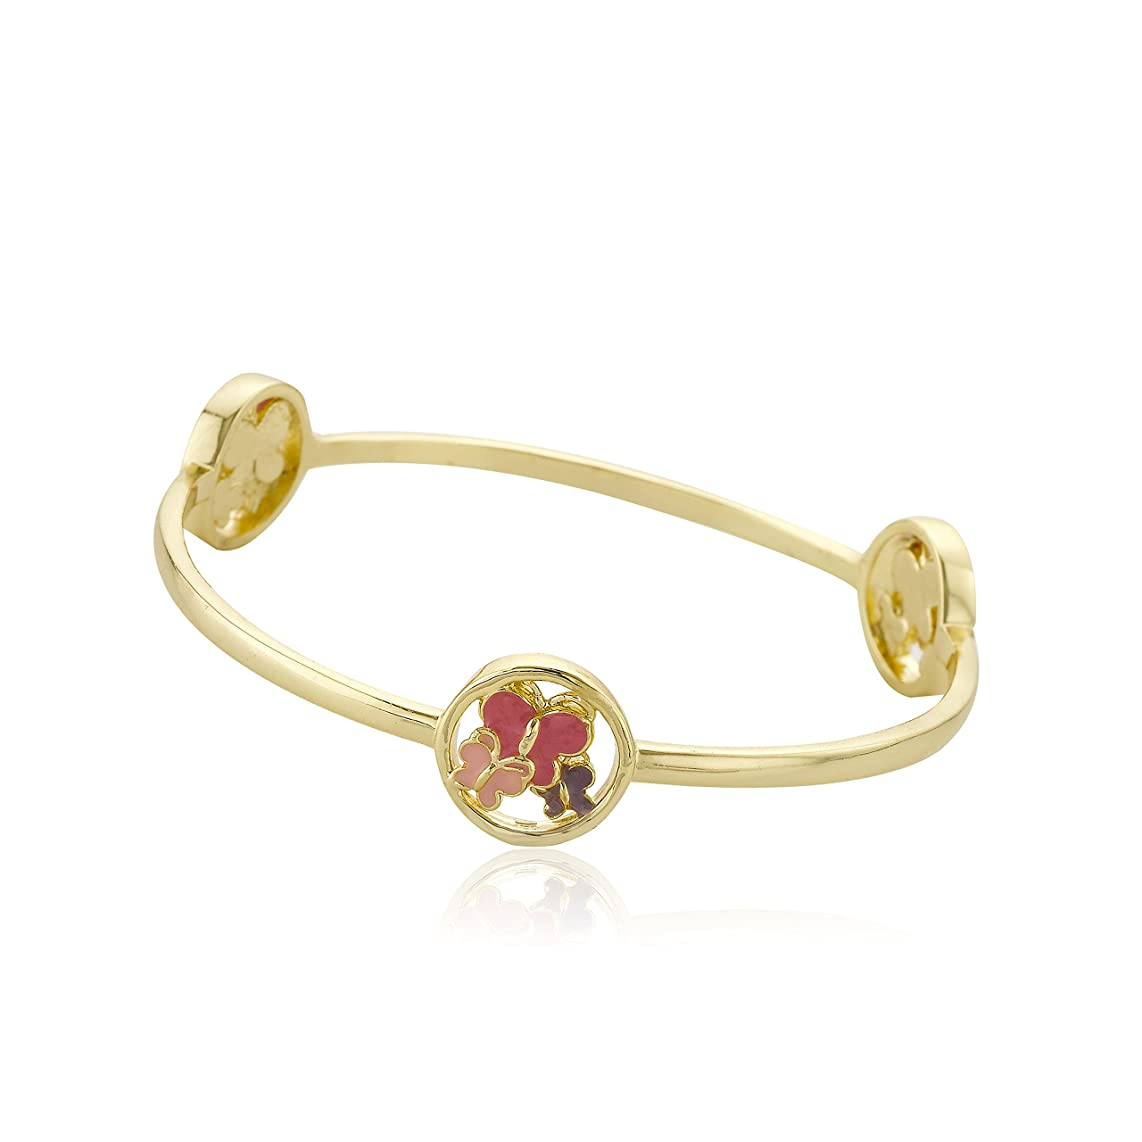 Little Miss Twin Stars Girls' Stackable Stunners 14k Gold-Plated Accented with Cut Out Enamel Disc Stations Bangle Bracelet